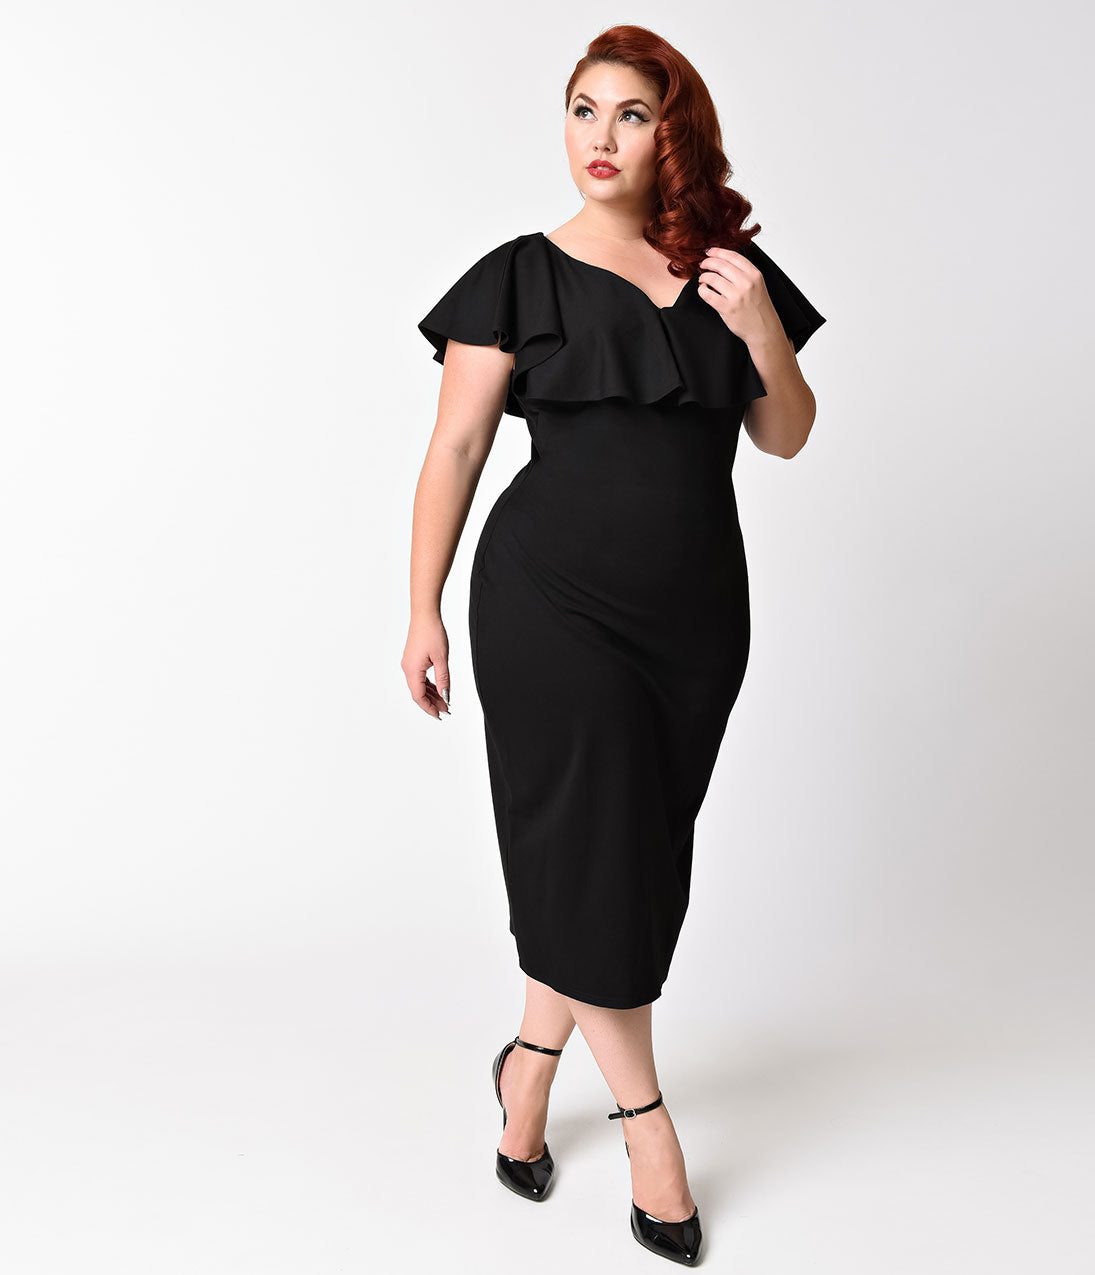 1930s Art Deco Plus Size Dresses | Tea Dresses, Party Dresses Unique Vintage Plus Size Black Knit Draped Sophia Wiggle Dress $59.00 AT vintagedancer.com